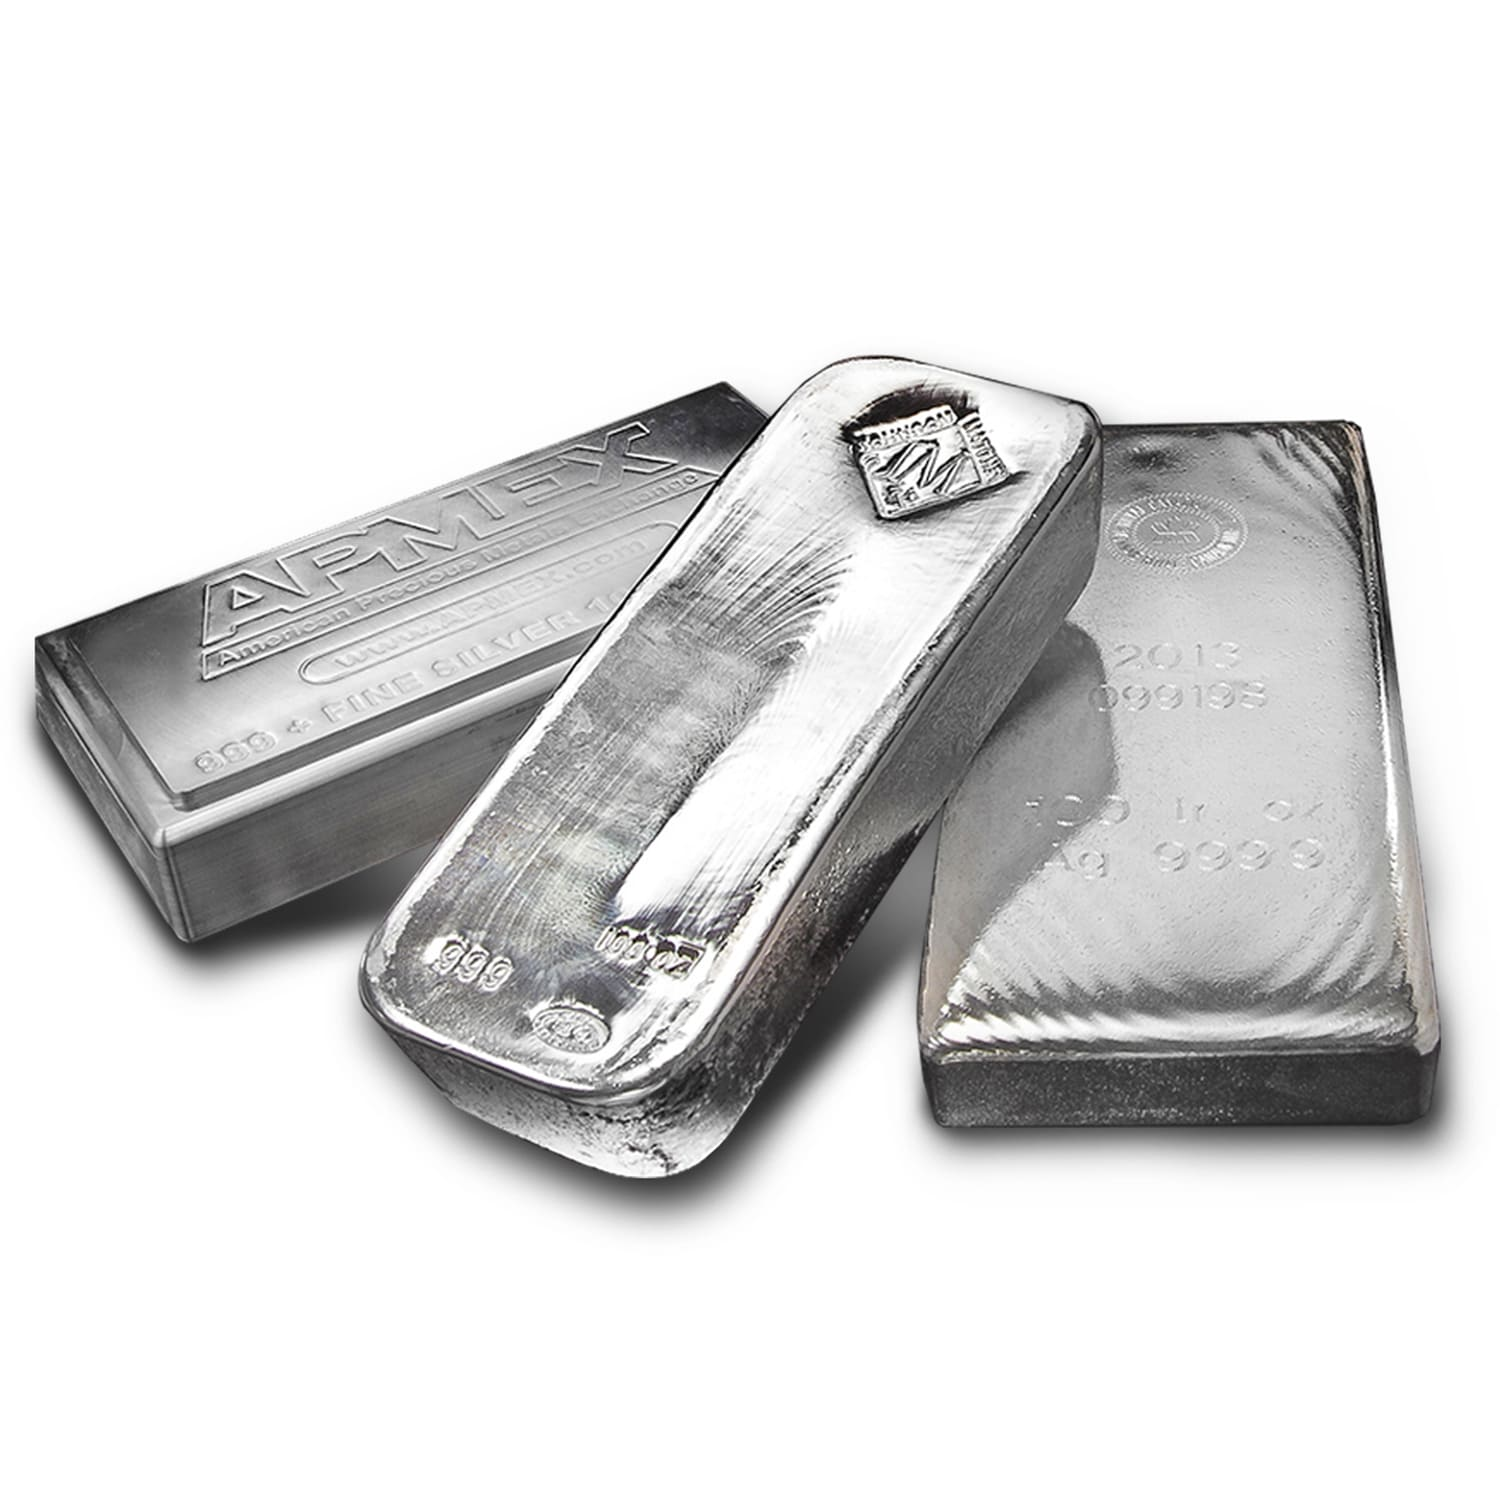 104.65 oz Silver Bar - Secondary Market